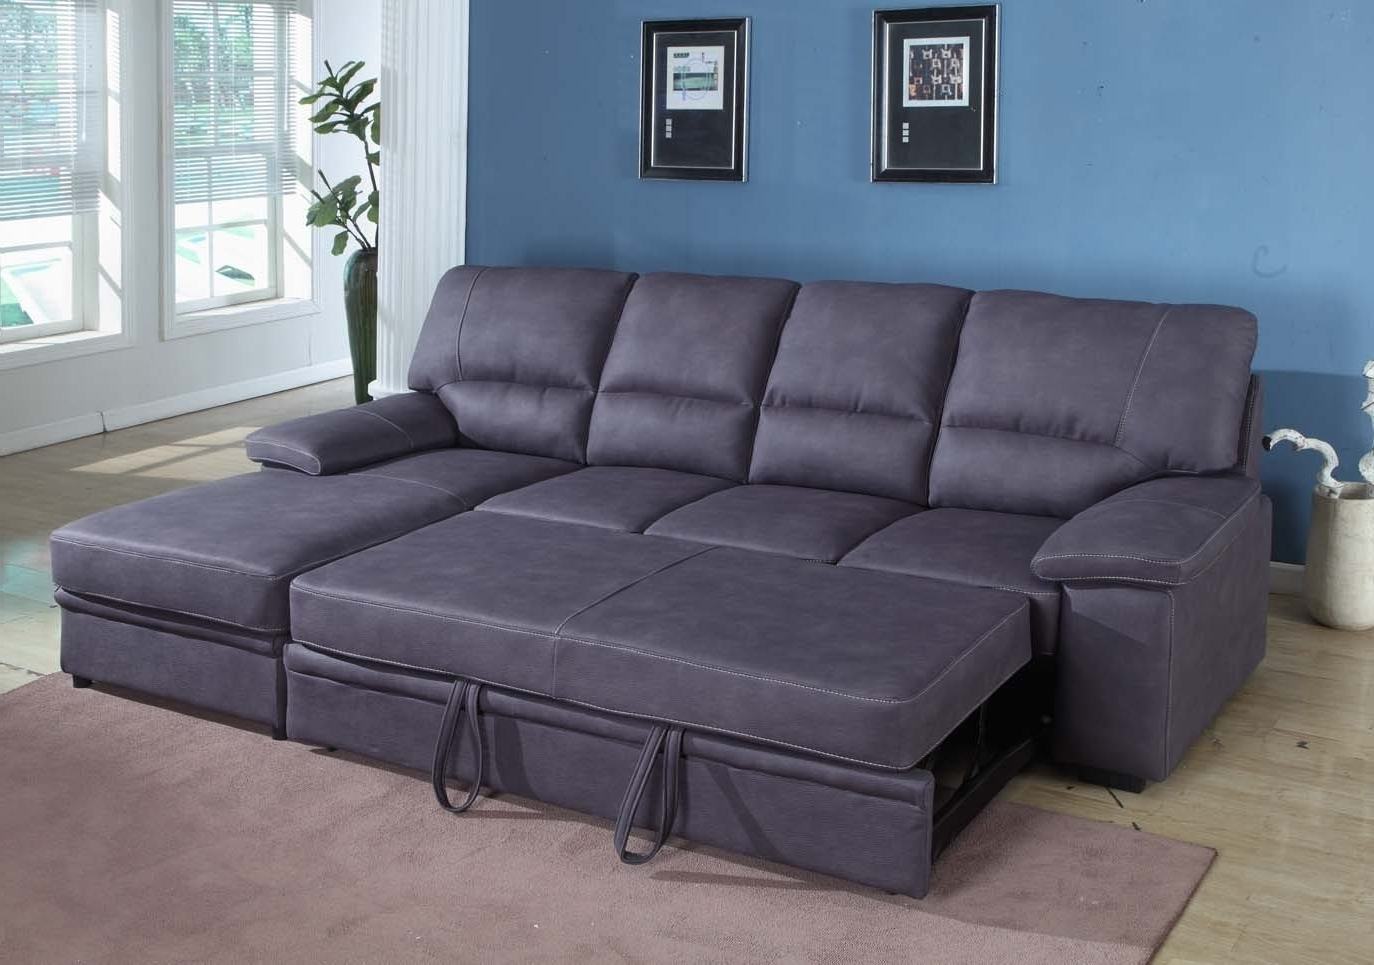 Brilliant Sectional Sleeper Sofa With Chaise Cool Living Room Intended For Most Recent Chaise Sleepers (View 9 of 15)